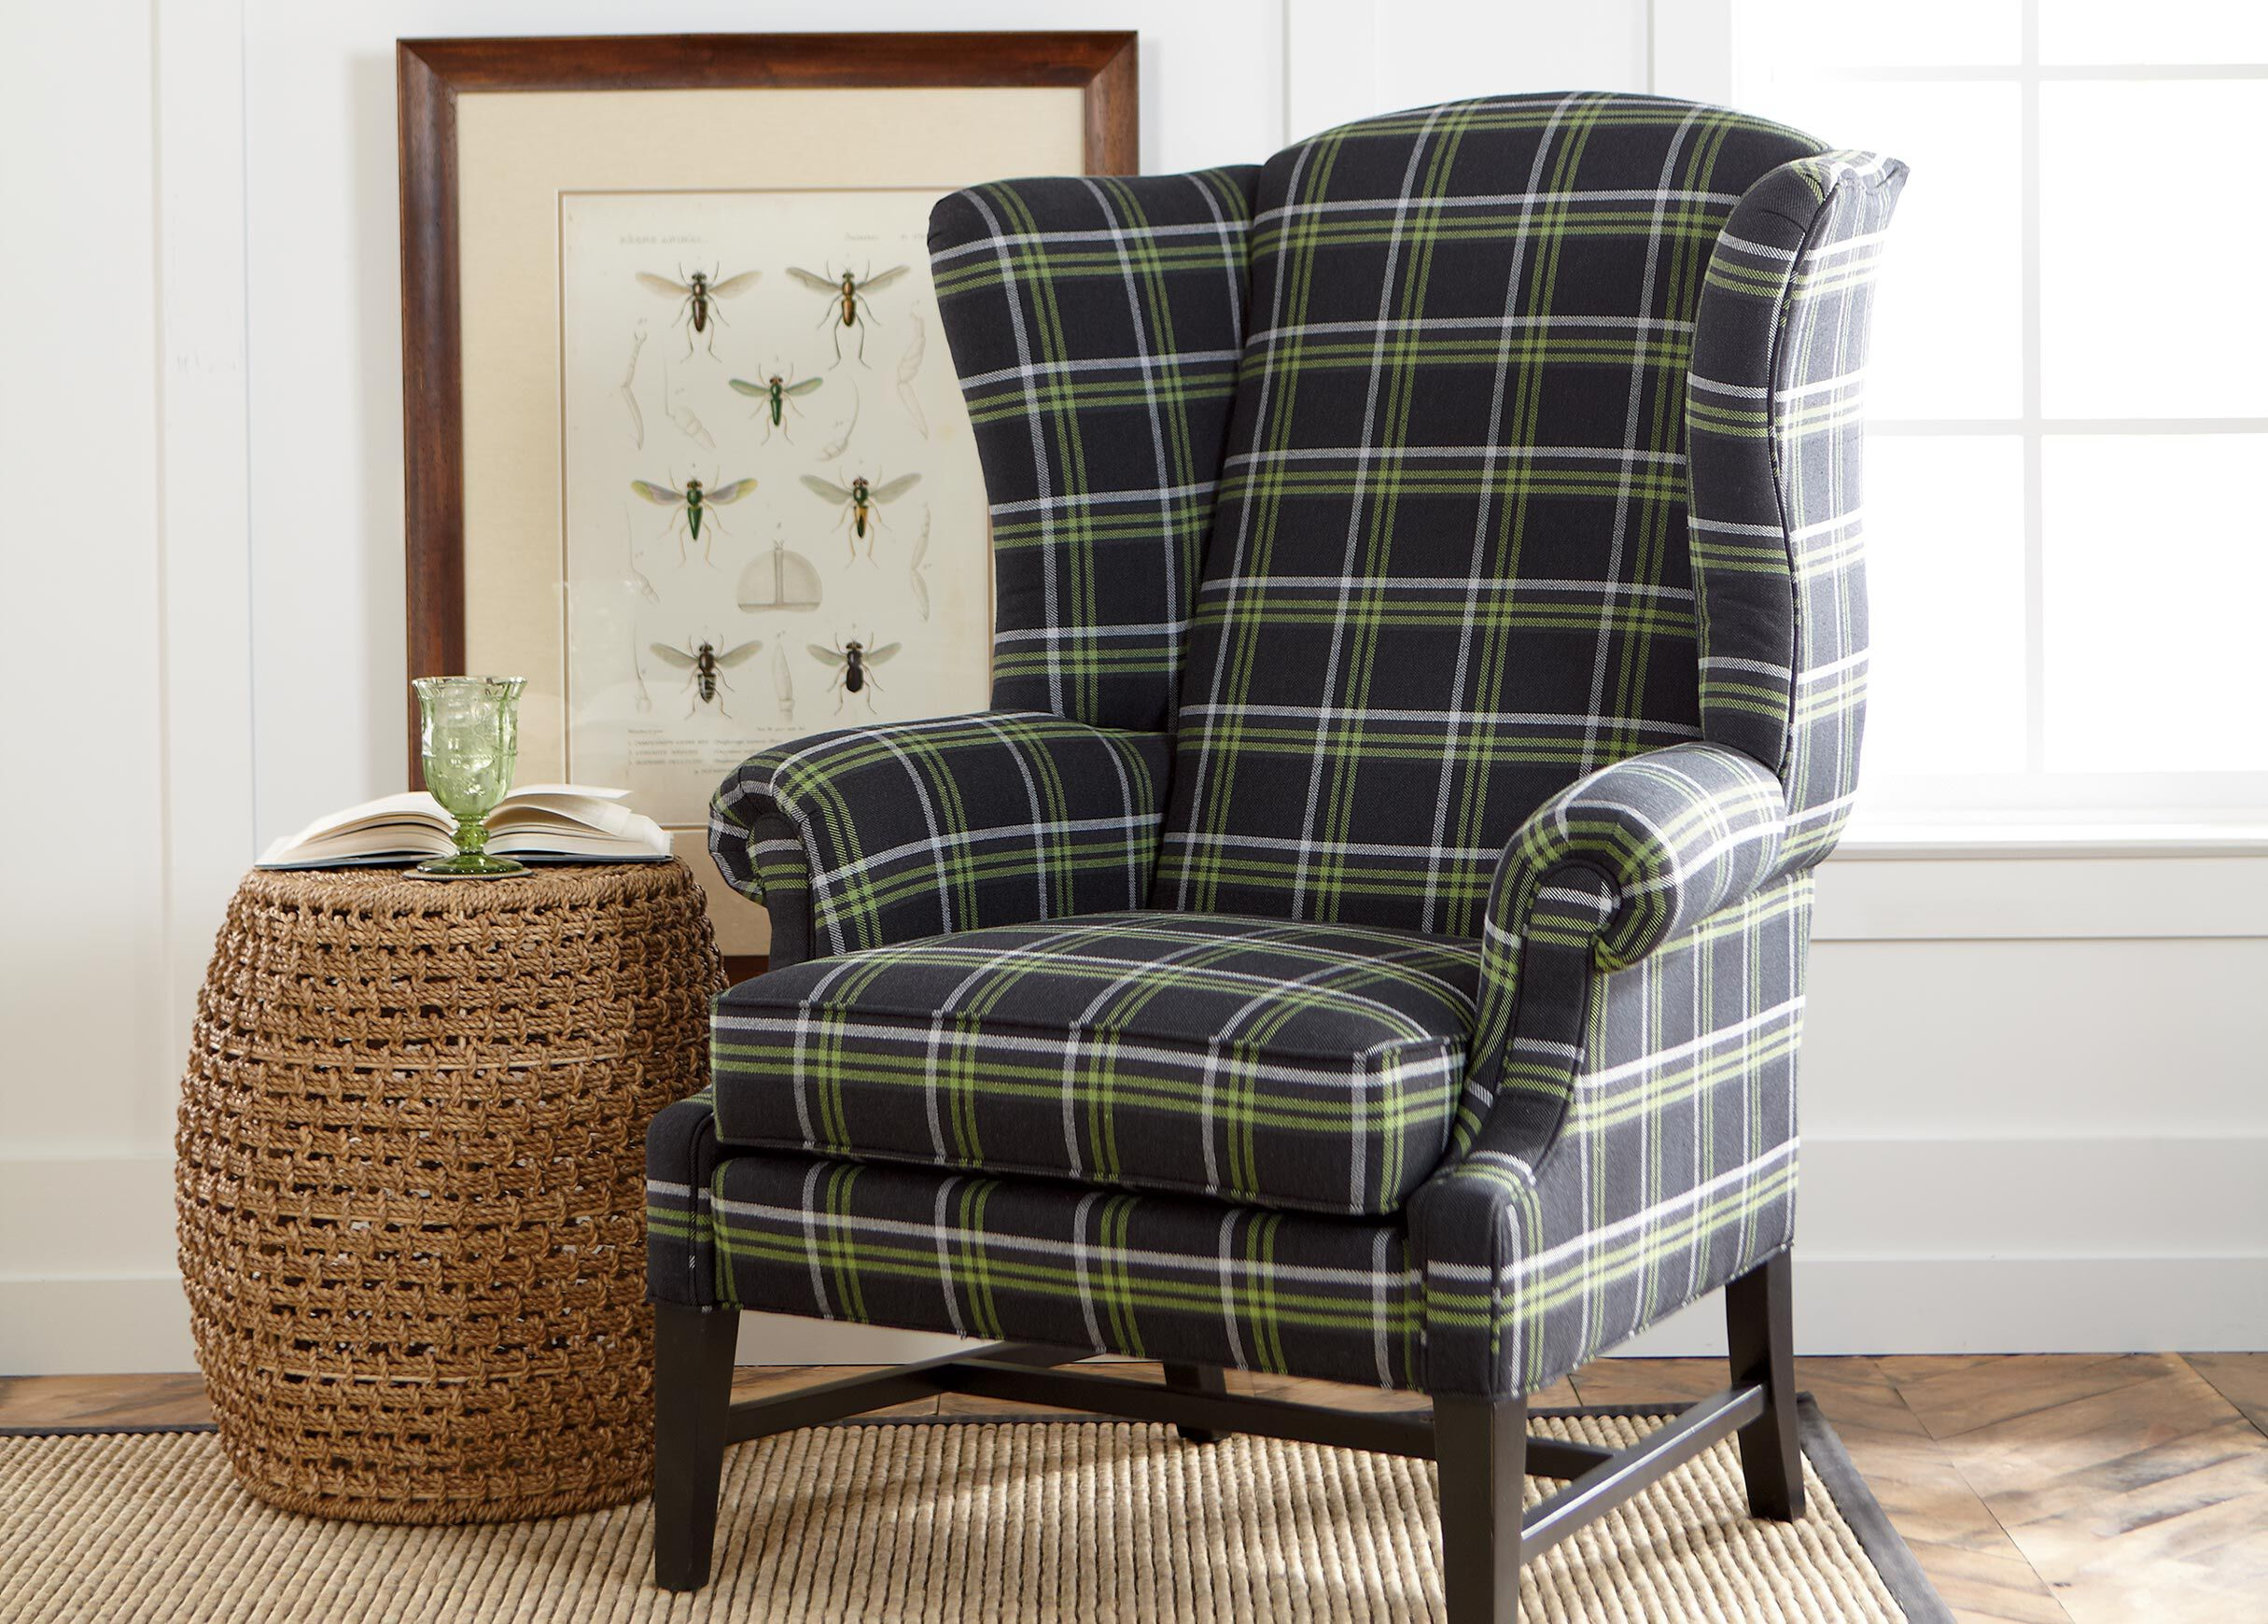 ethan allen wingback chairs office recliner chair canada paxton avocado fabric fabrics